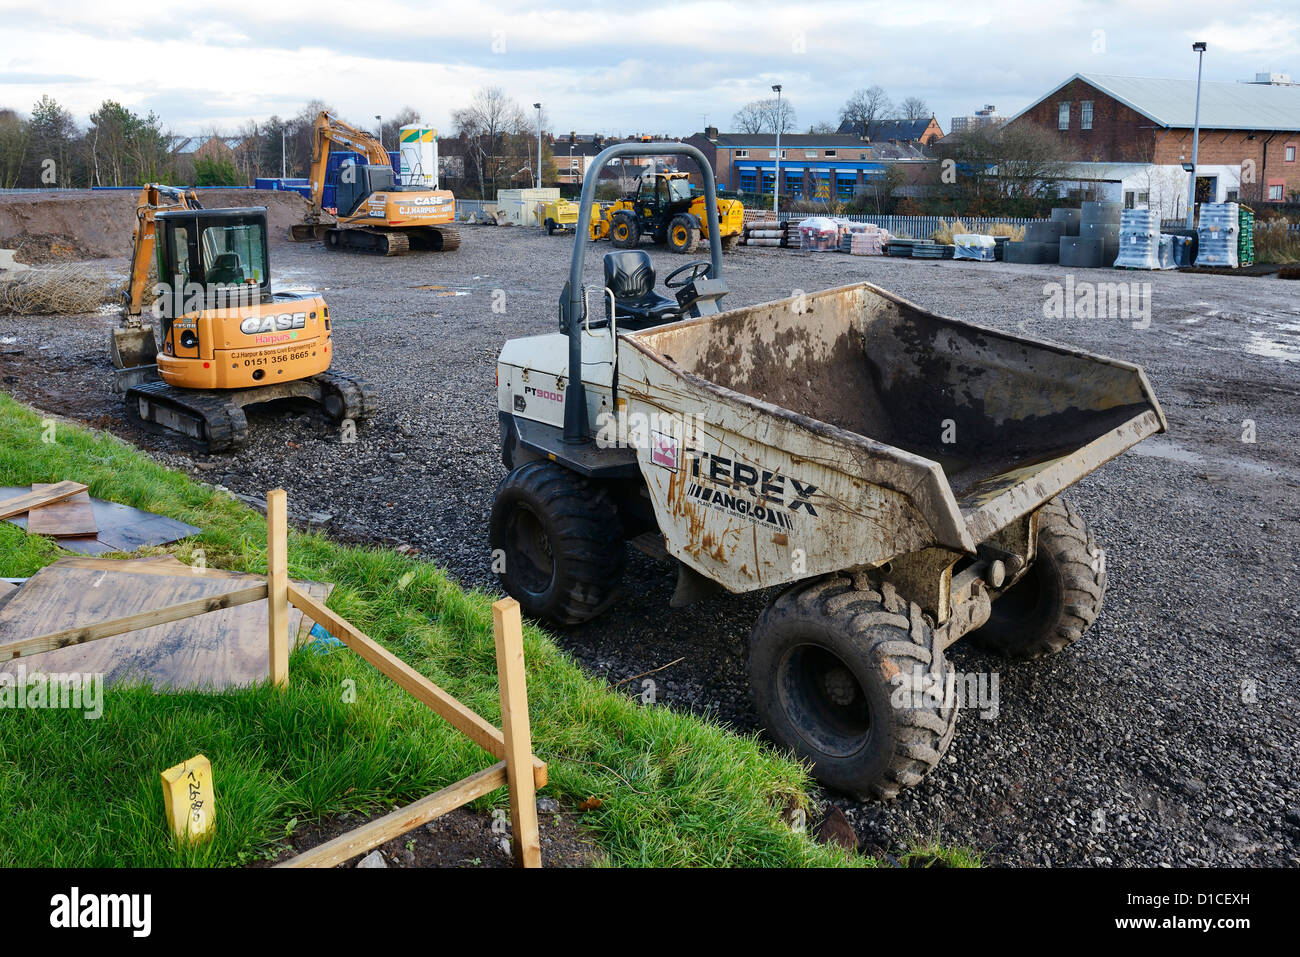 Plant and machinery on a building site - Stock Image